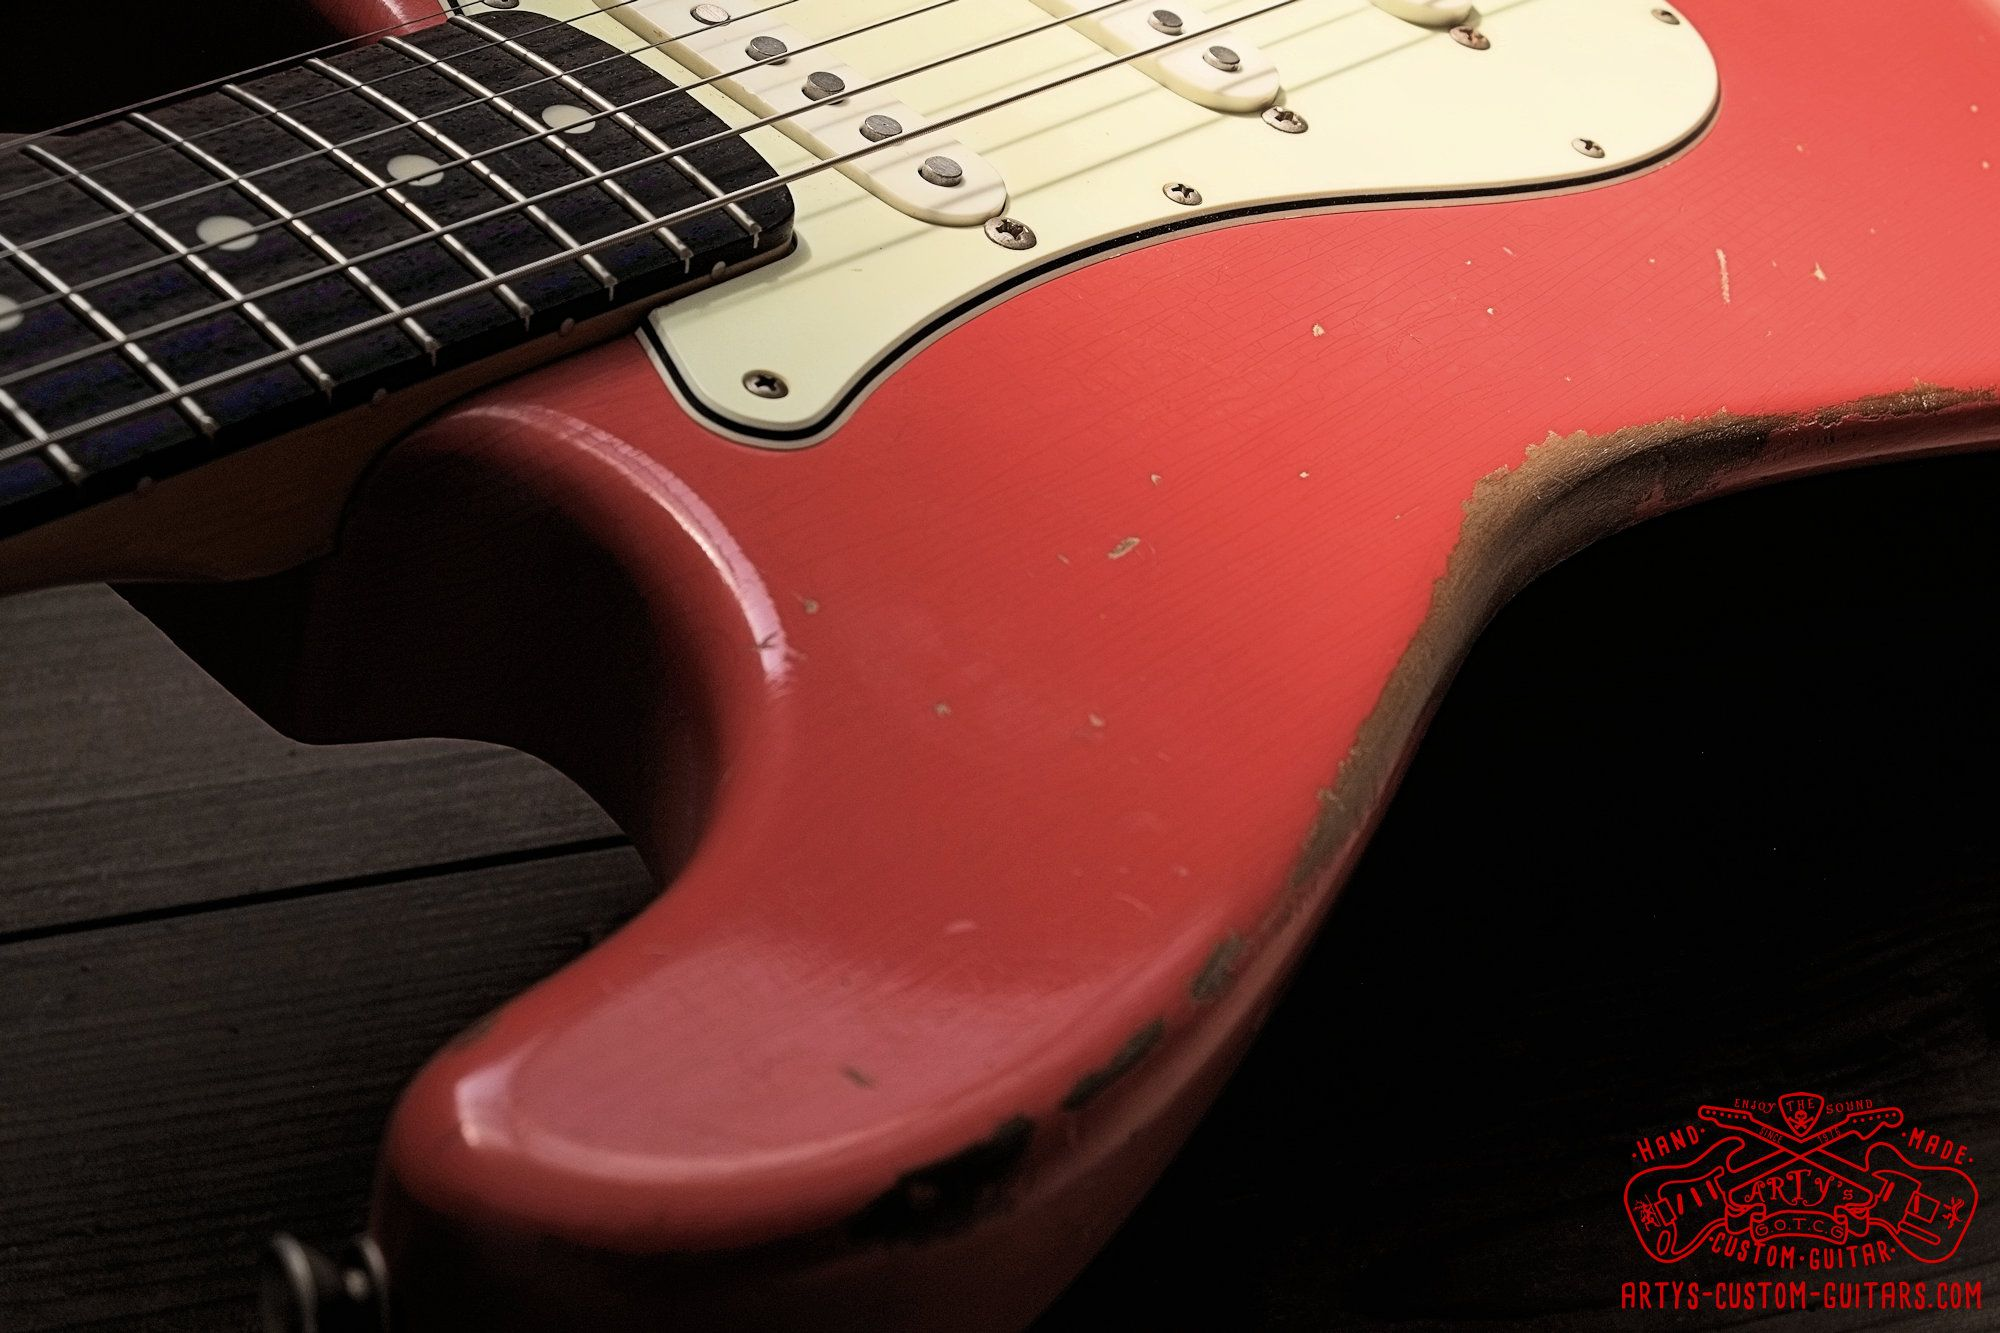 medium resolution of stratocaster 62 heavy relic fiesta red body artys custom guitars shop strat relicing swamp ash swampash